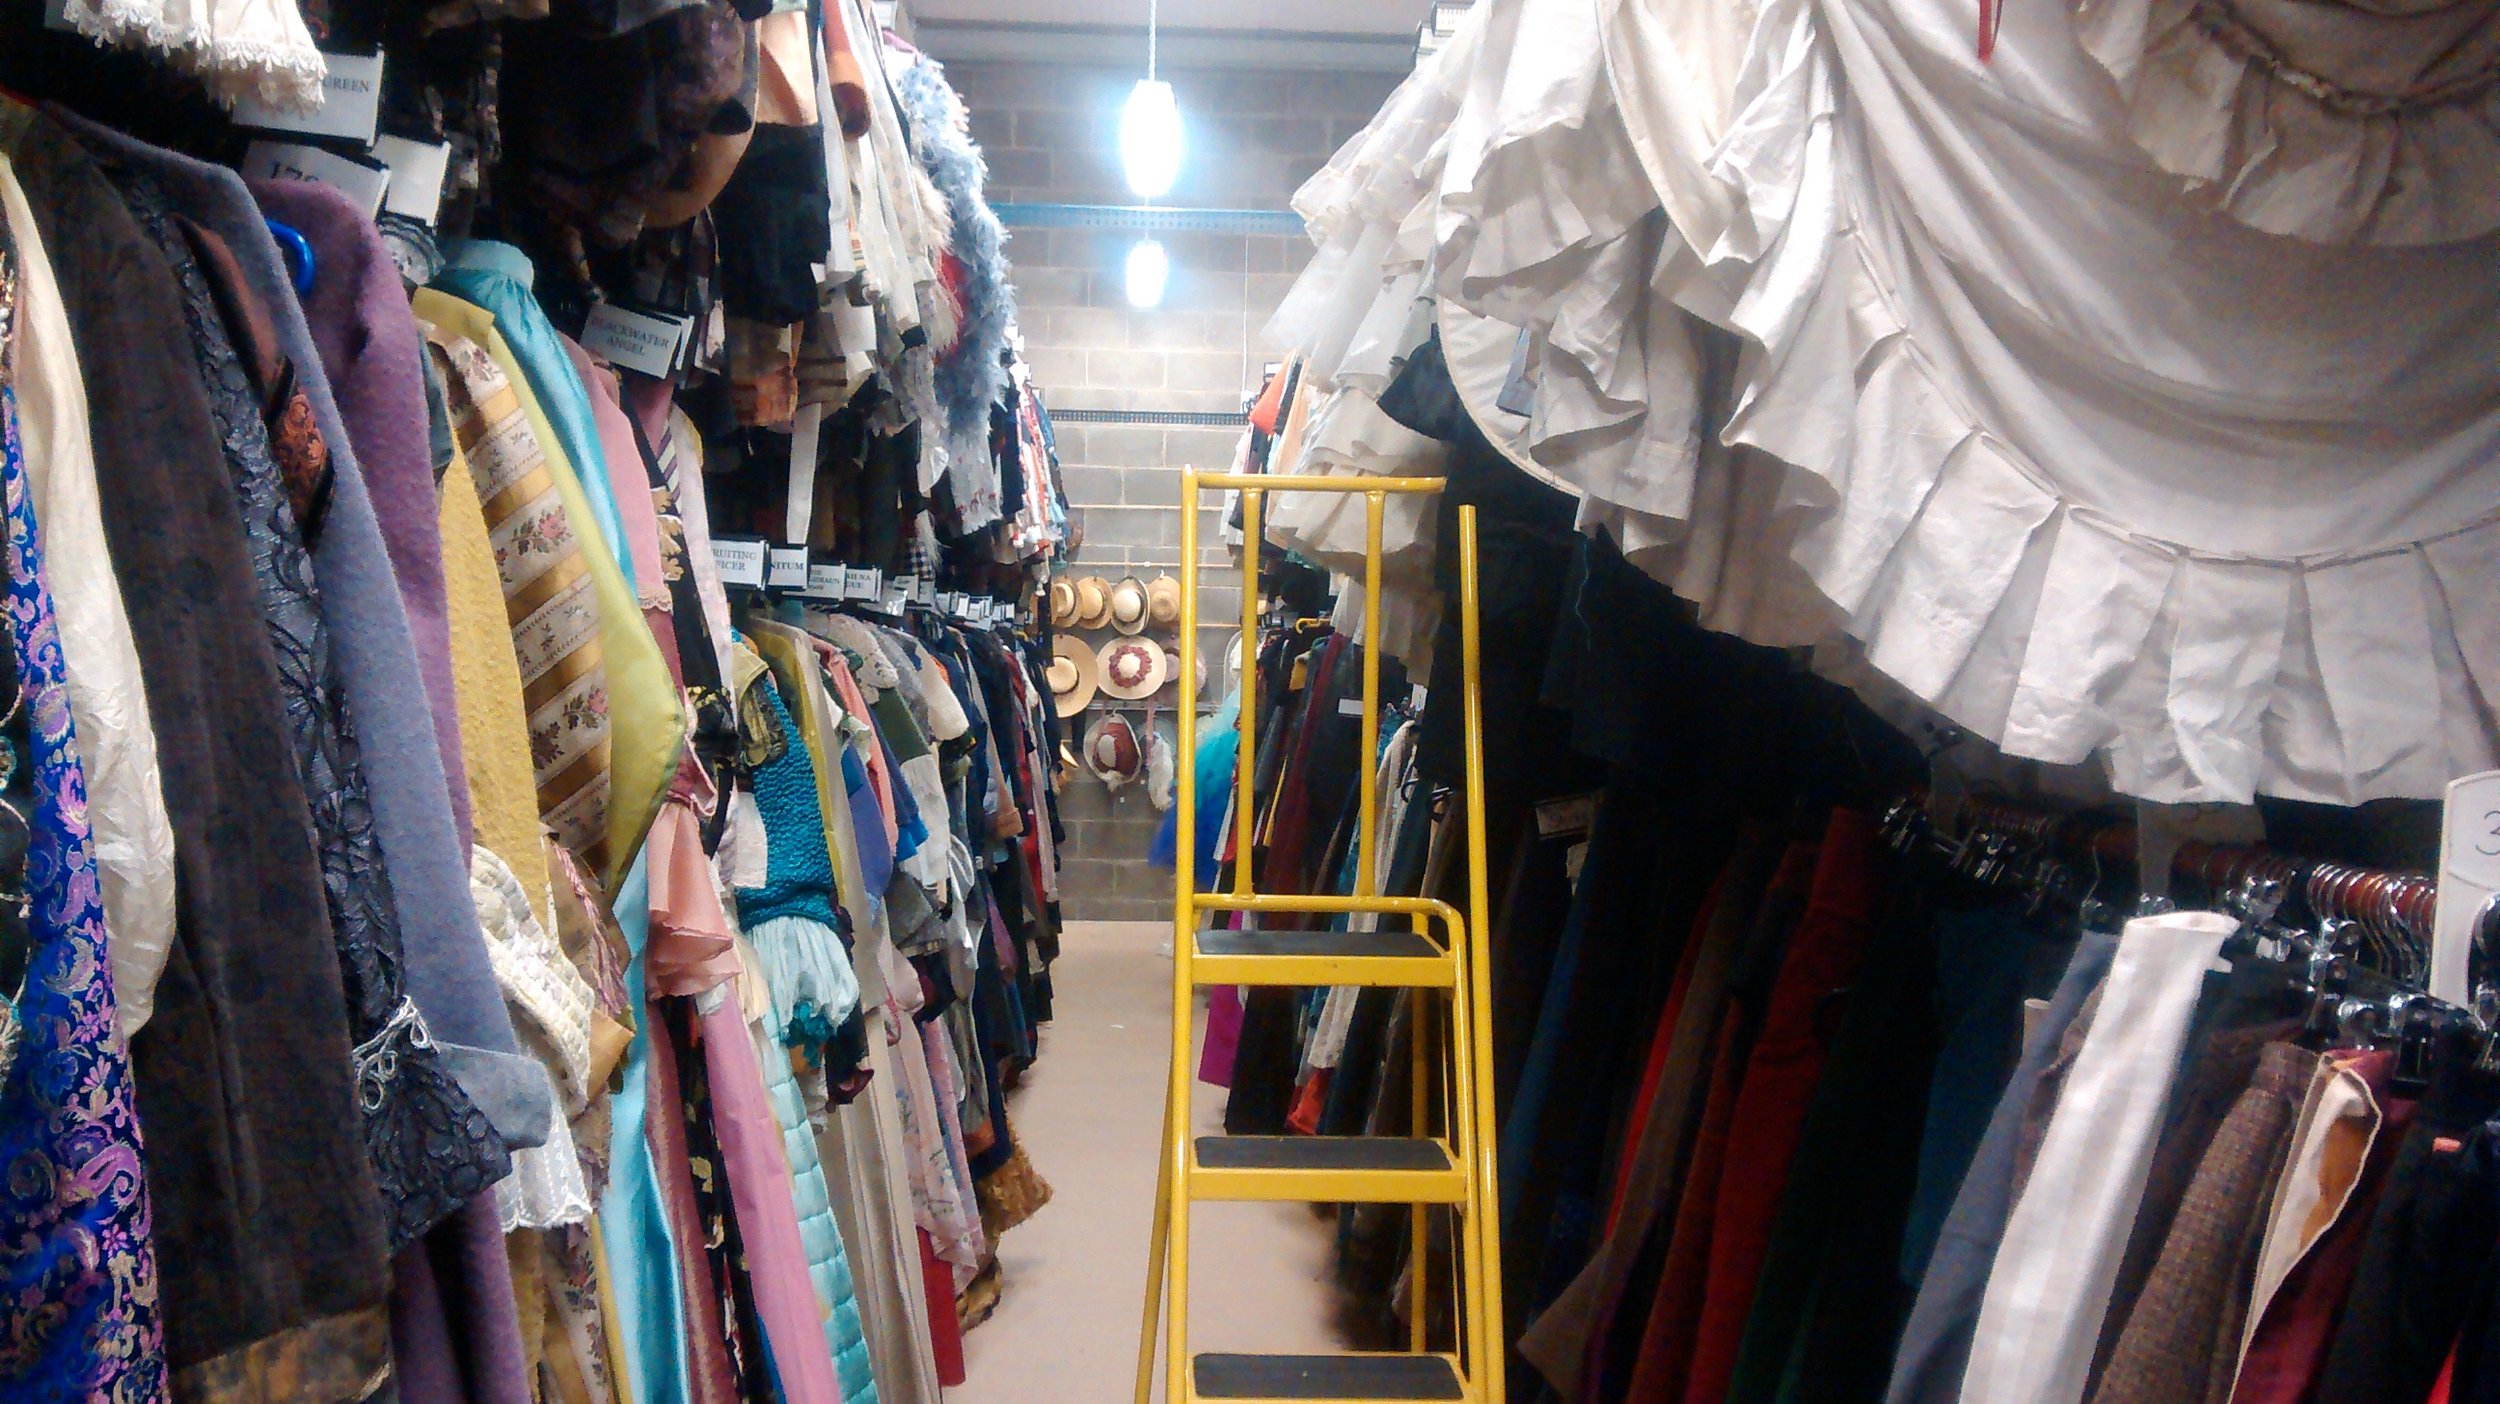 An aisle in the costume hire warehouse in Finglas